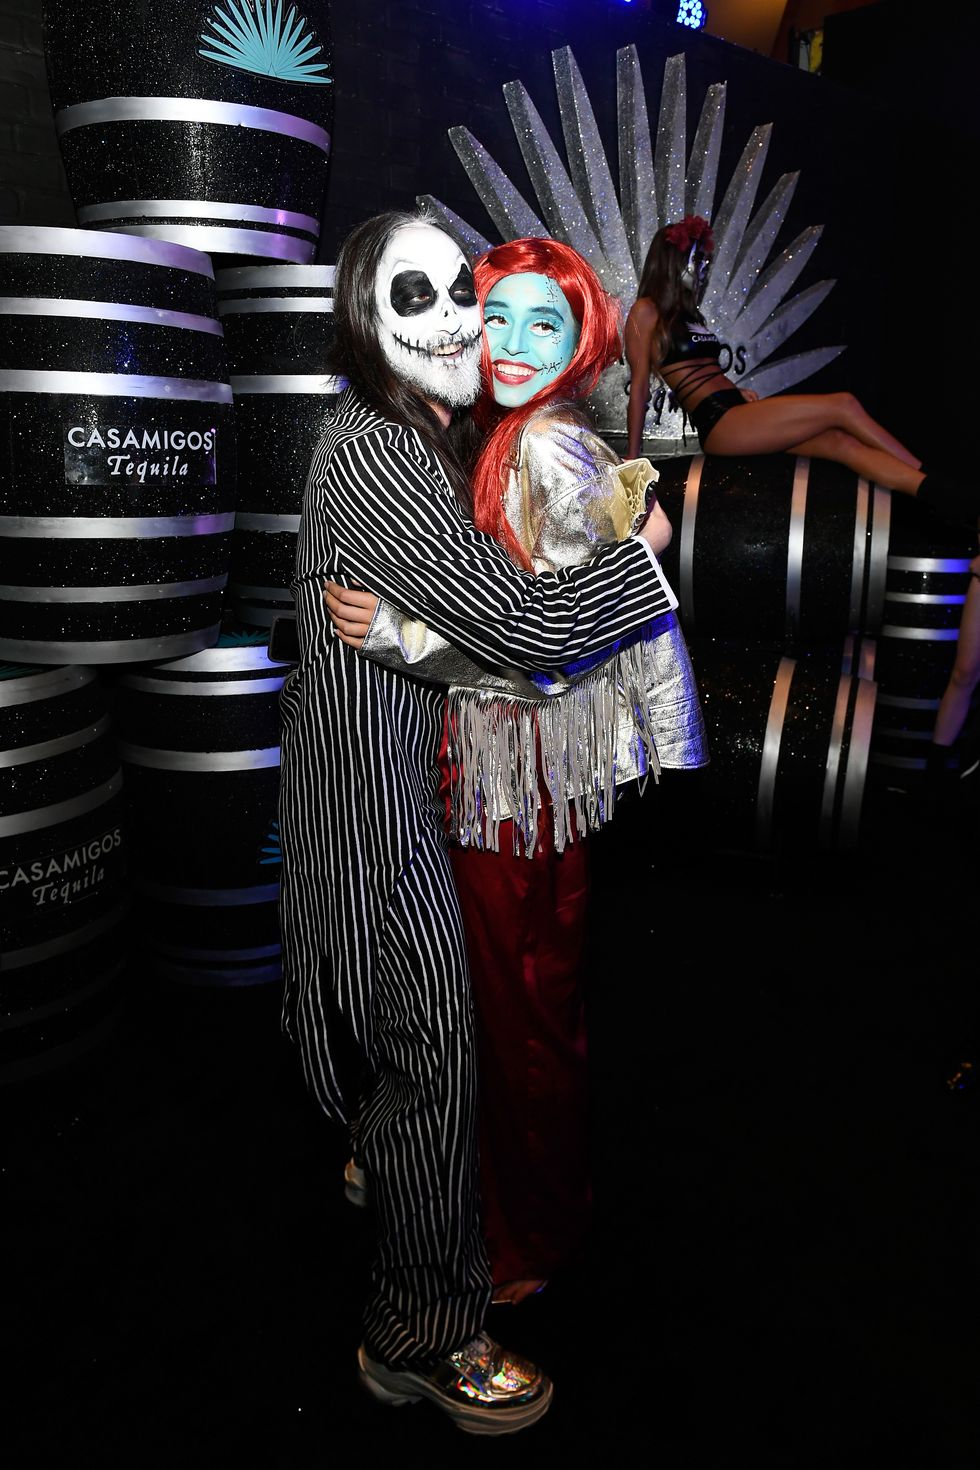 Steve Aoki and Nicole Zimmerman - Jack Skellington and Sally Musician Steve Aoki and actress Nicole Zimmerman brought Halloween classic The Nightmare Before Christmas to life at the 2018 Casamigos Halloween party, dressed as Jack Skellington and Sally.